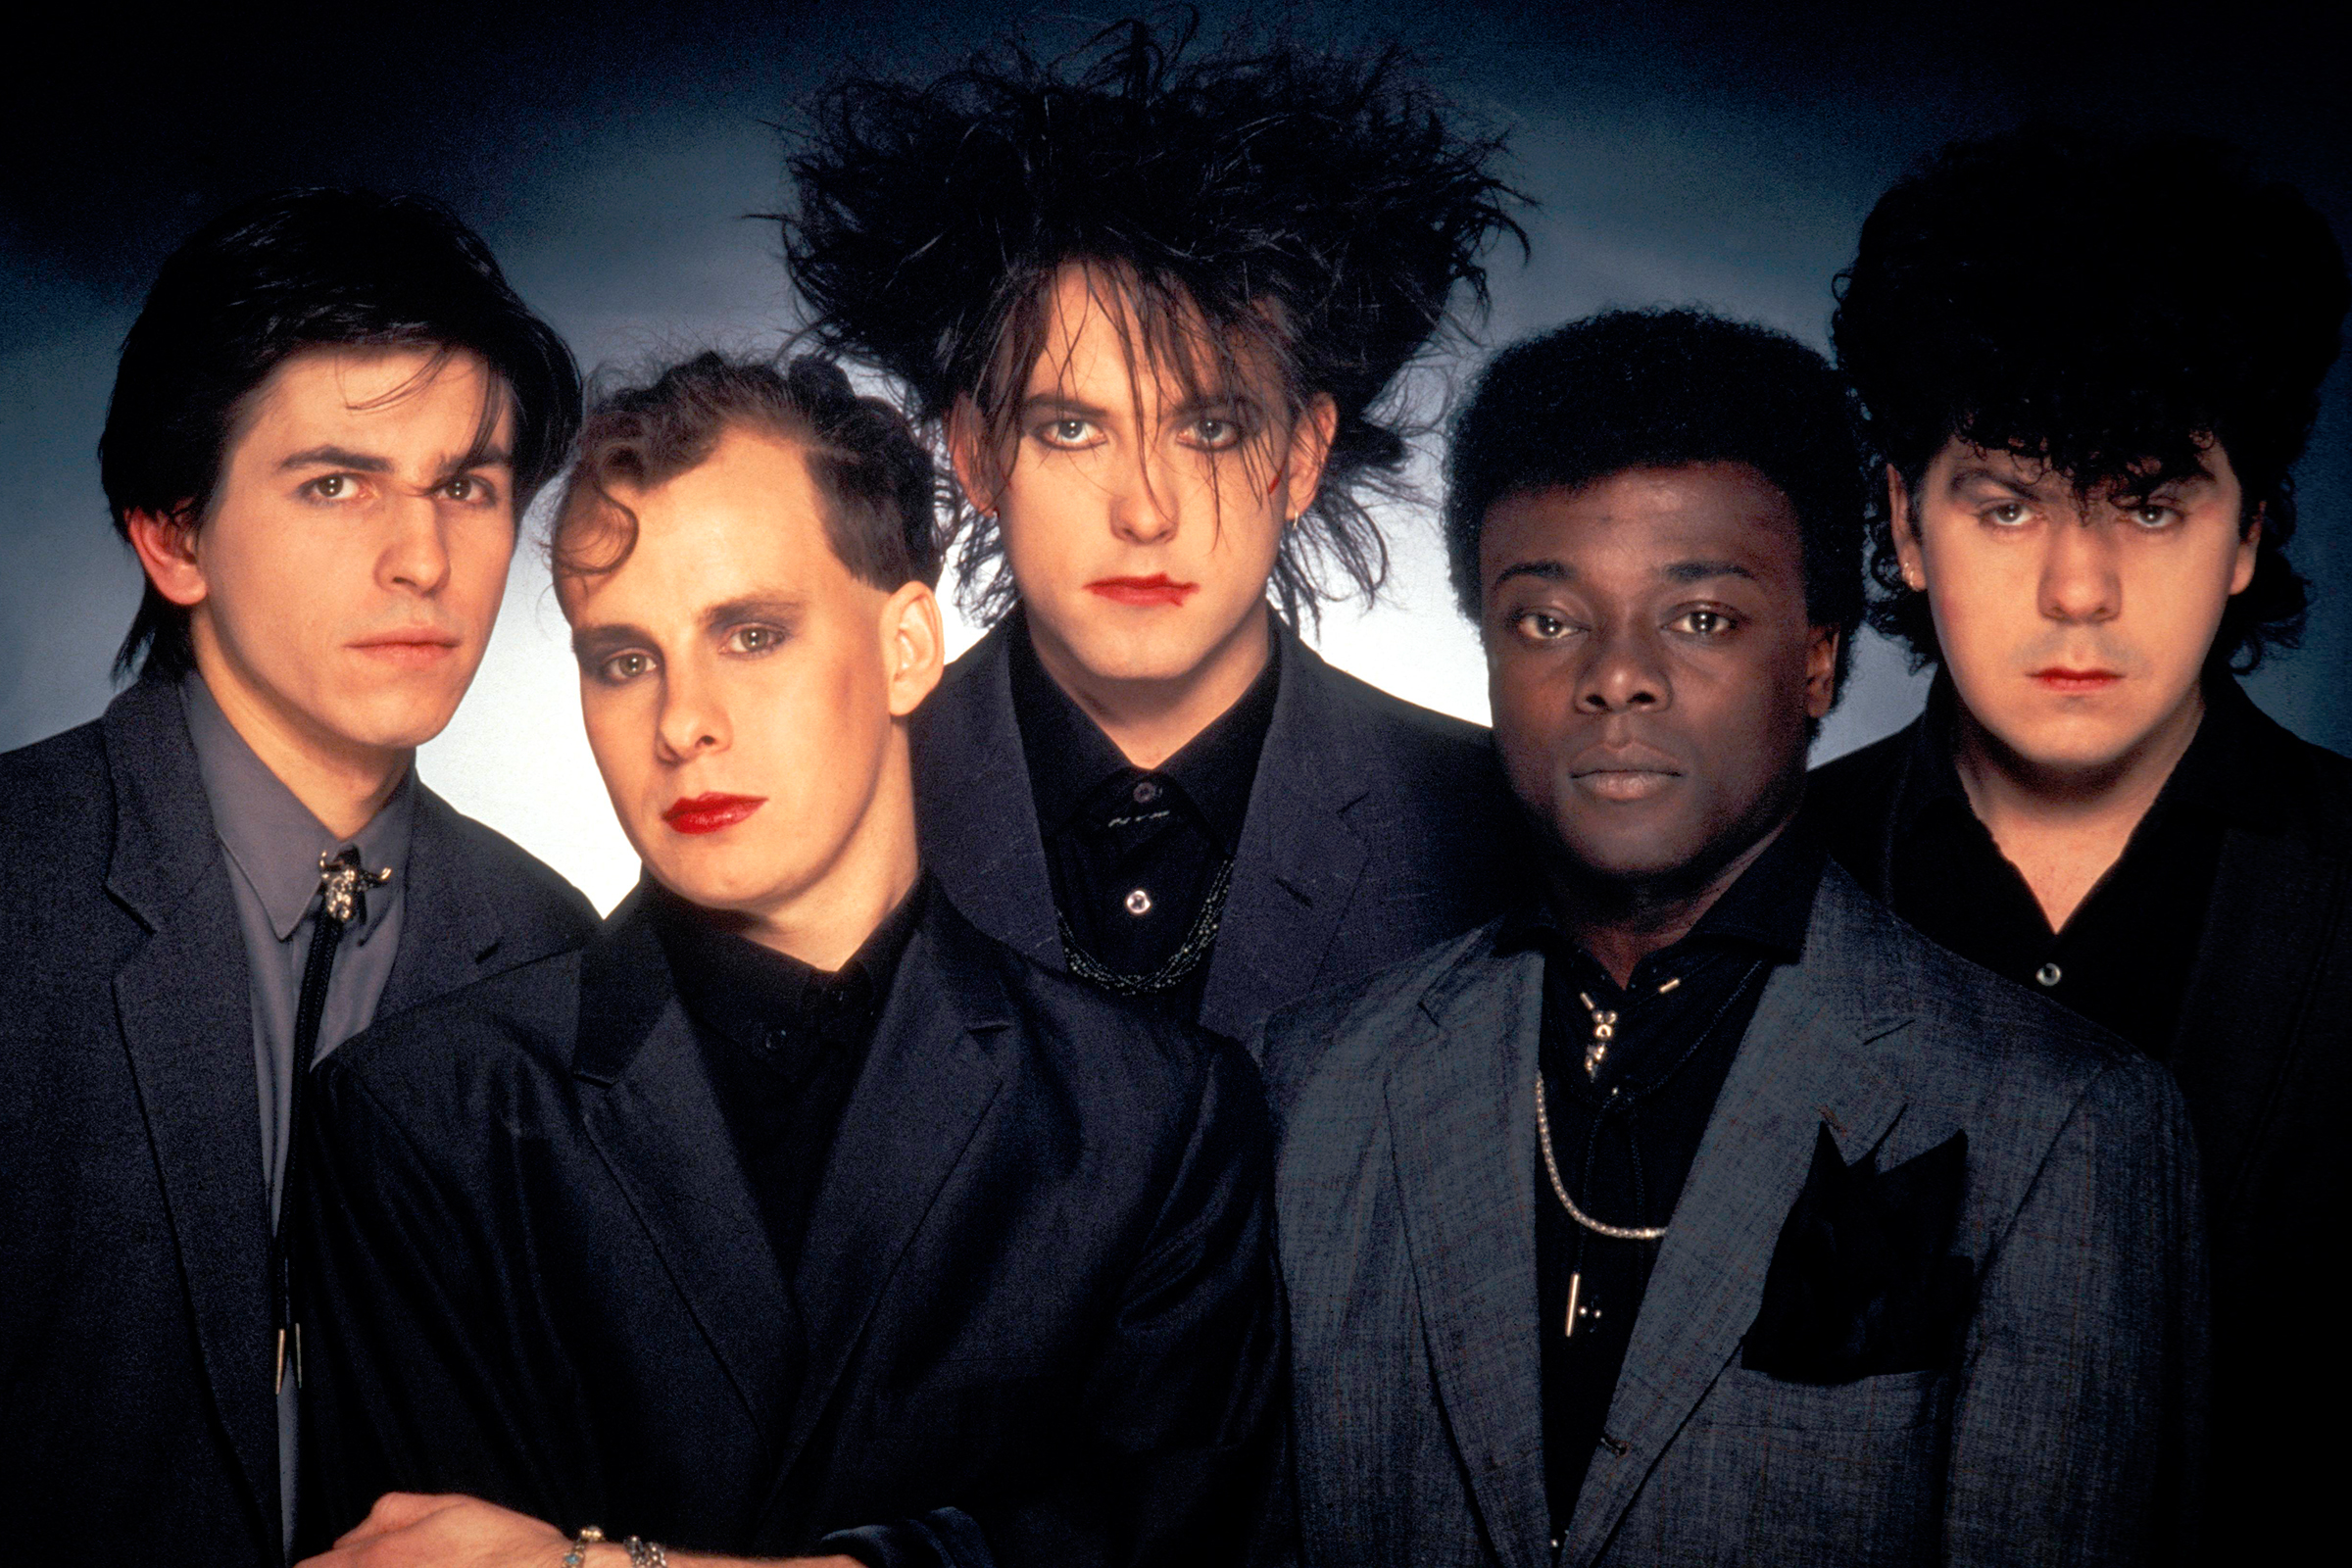 Andy Anderson, Drummer for the Cure, Iggy Pop, Dead at 68